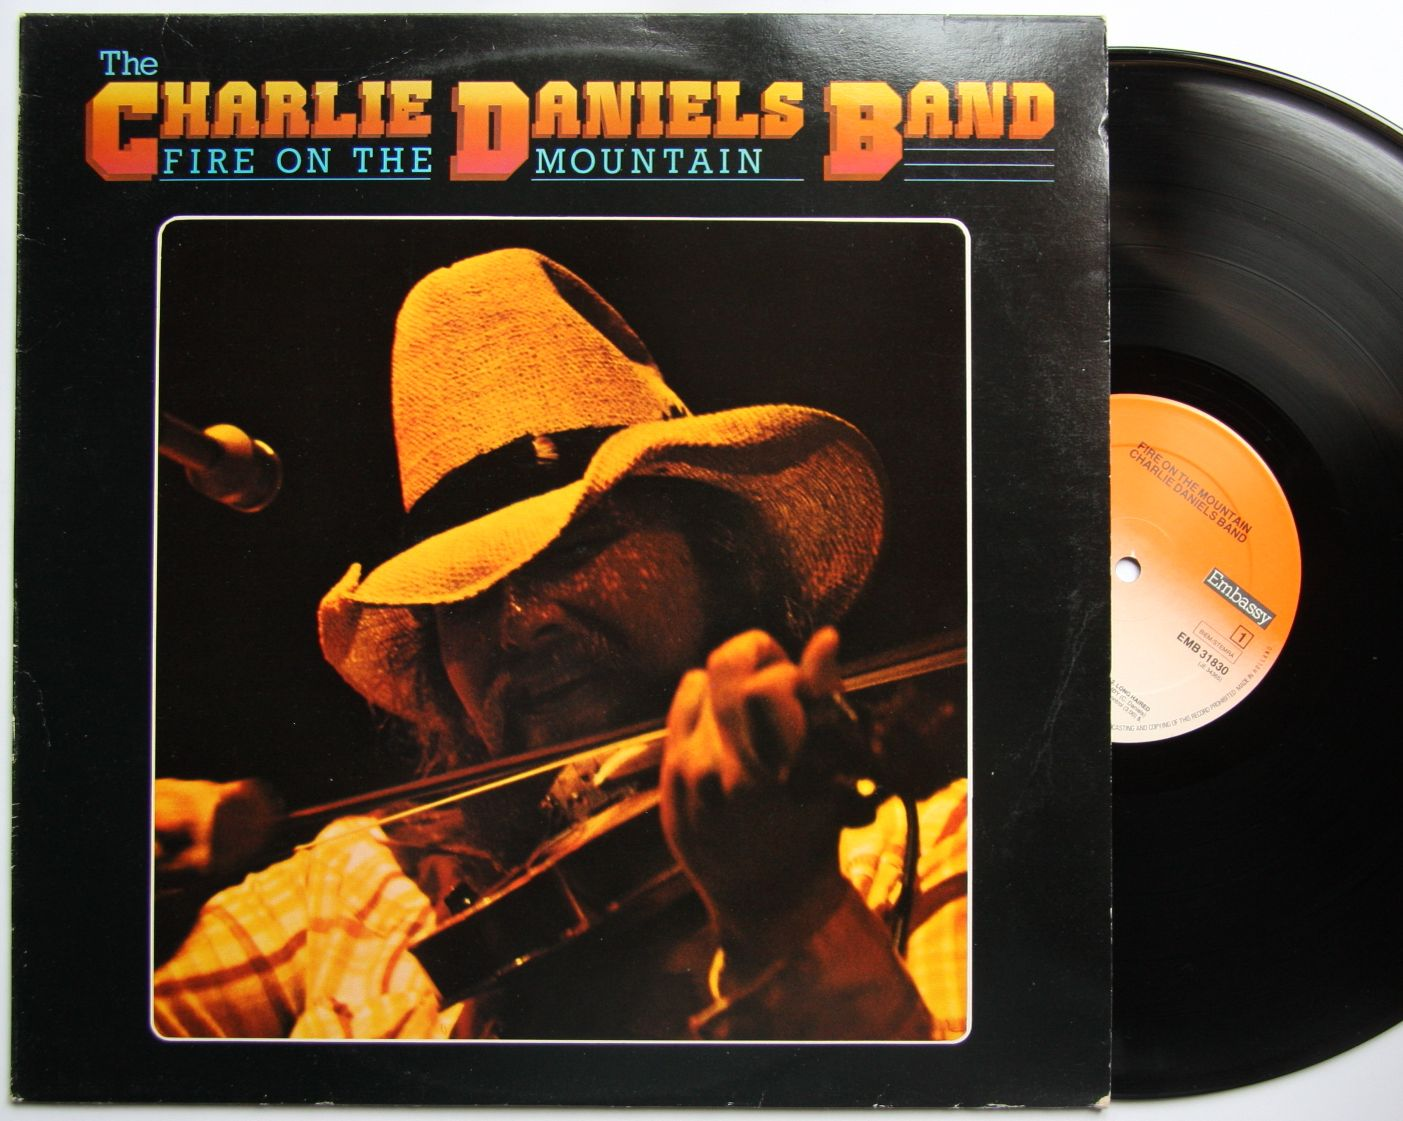 Charlie Daniels Band - Fire On The Mountain Album